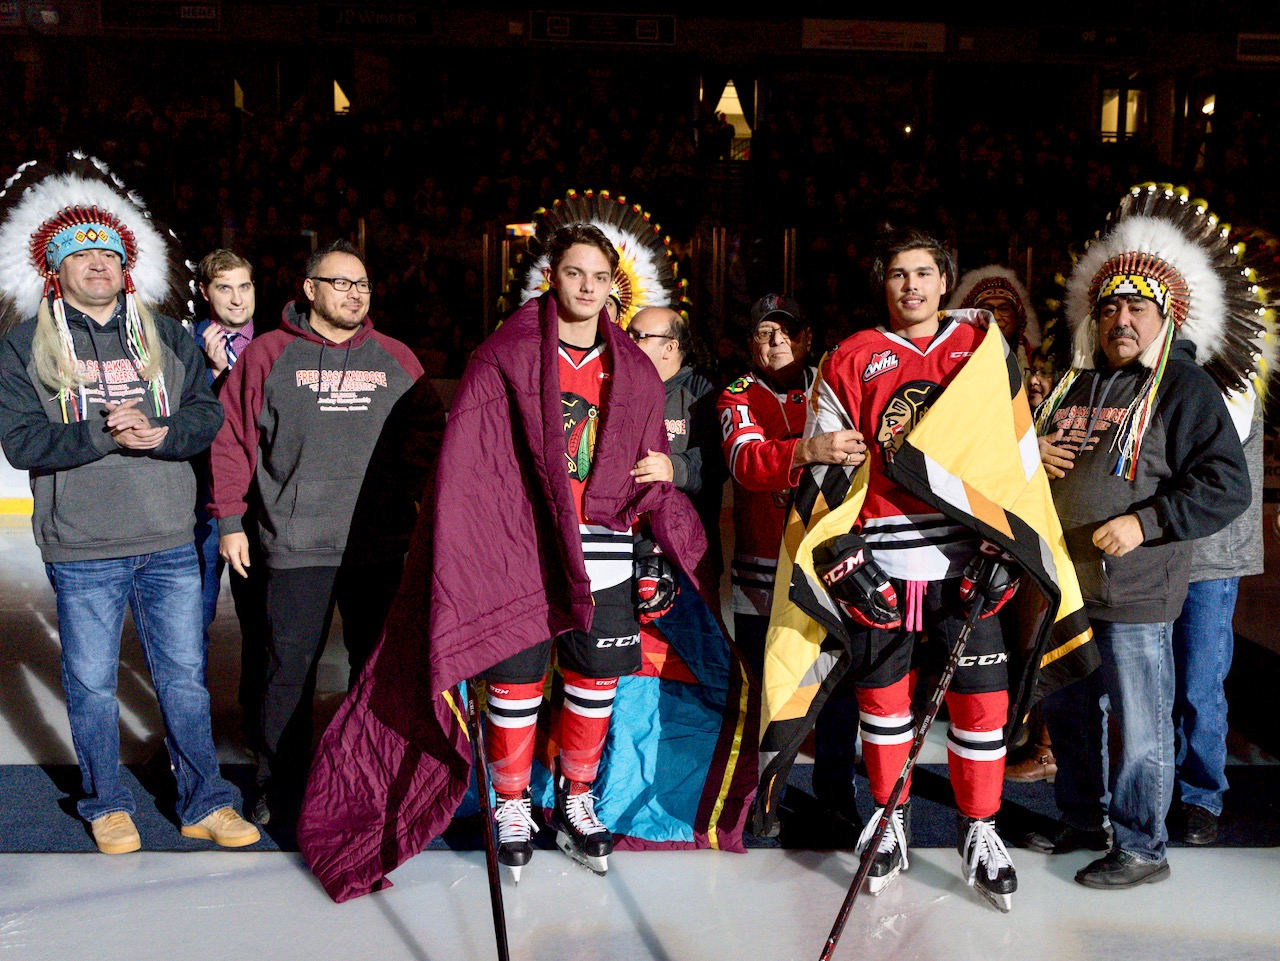 The Conversation: Rethinking Canada through Indigenous hockey